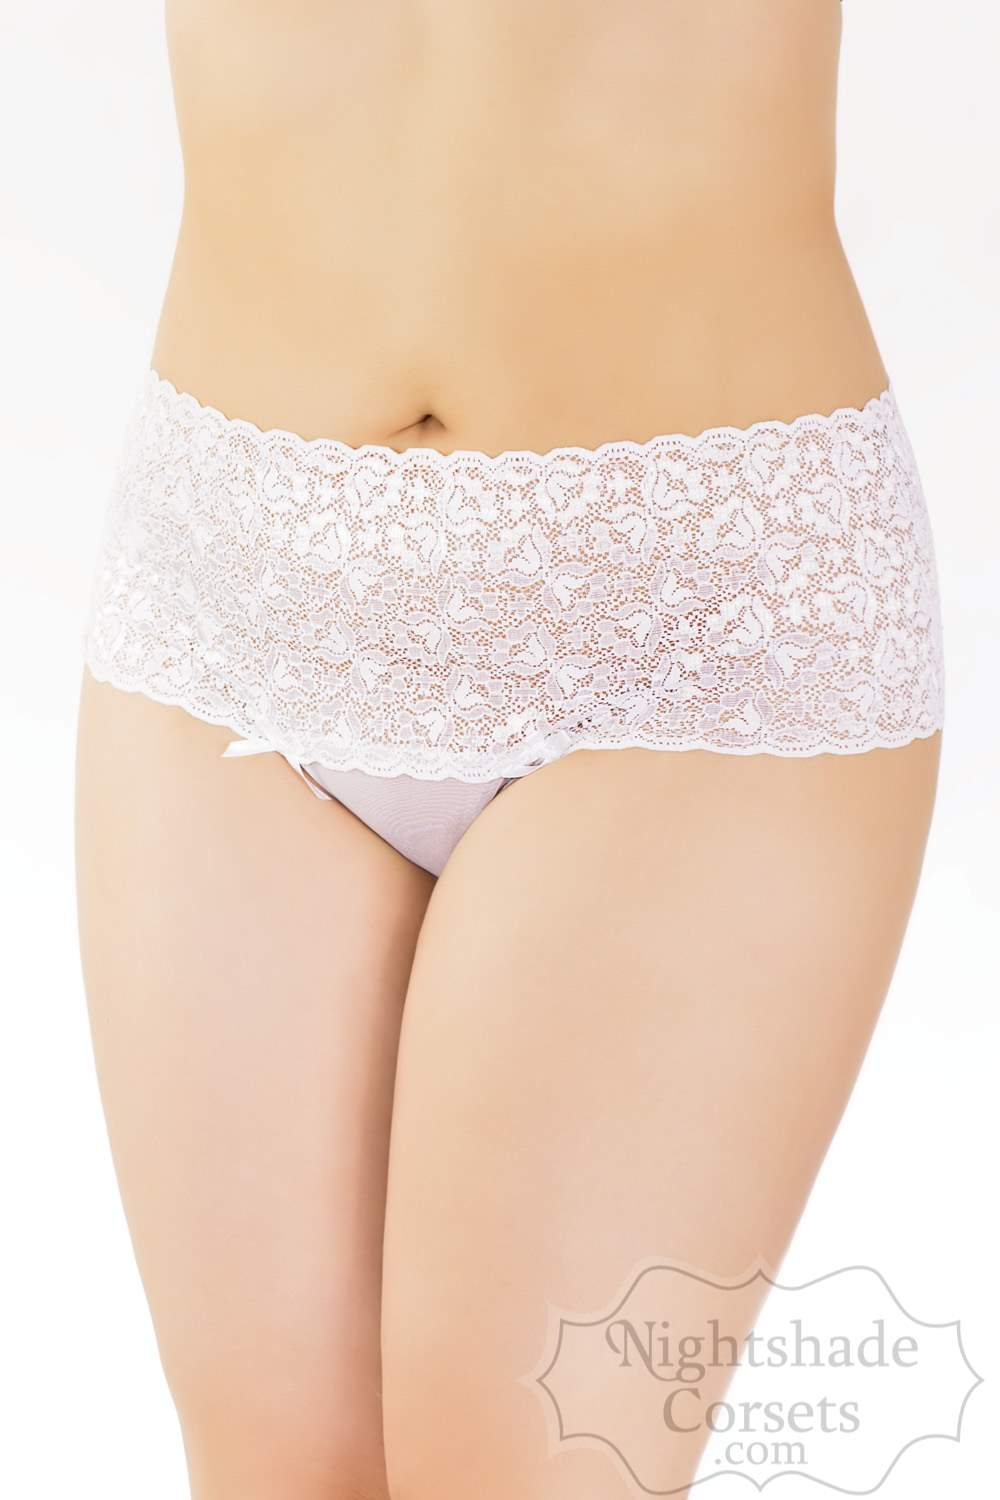 Mesh high waisted thong Stretch lace waistband bow detailing 0111 Edmonton